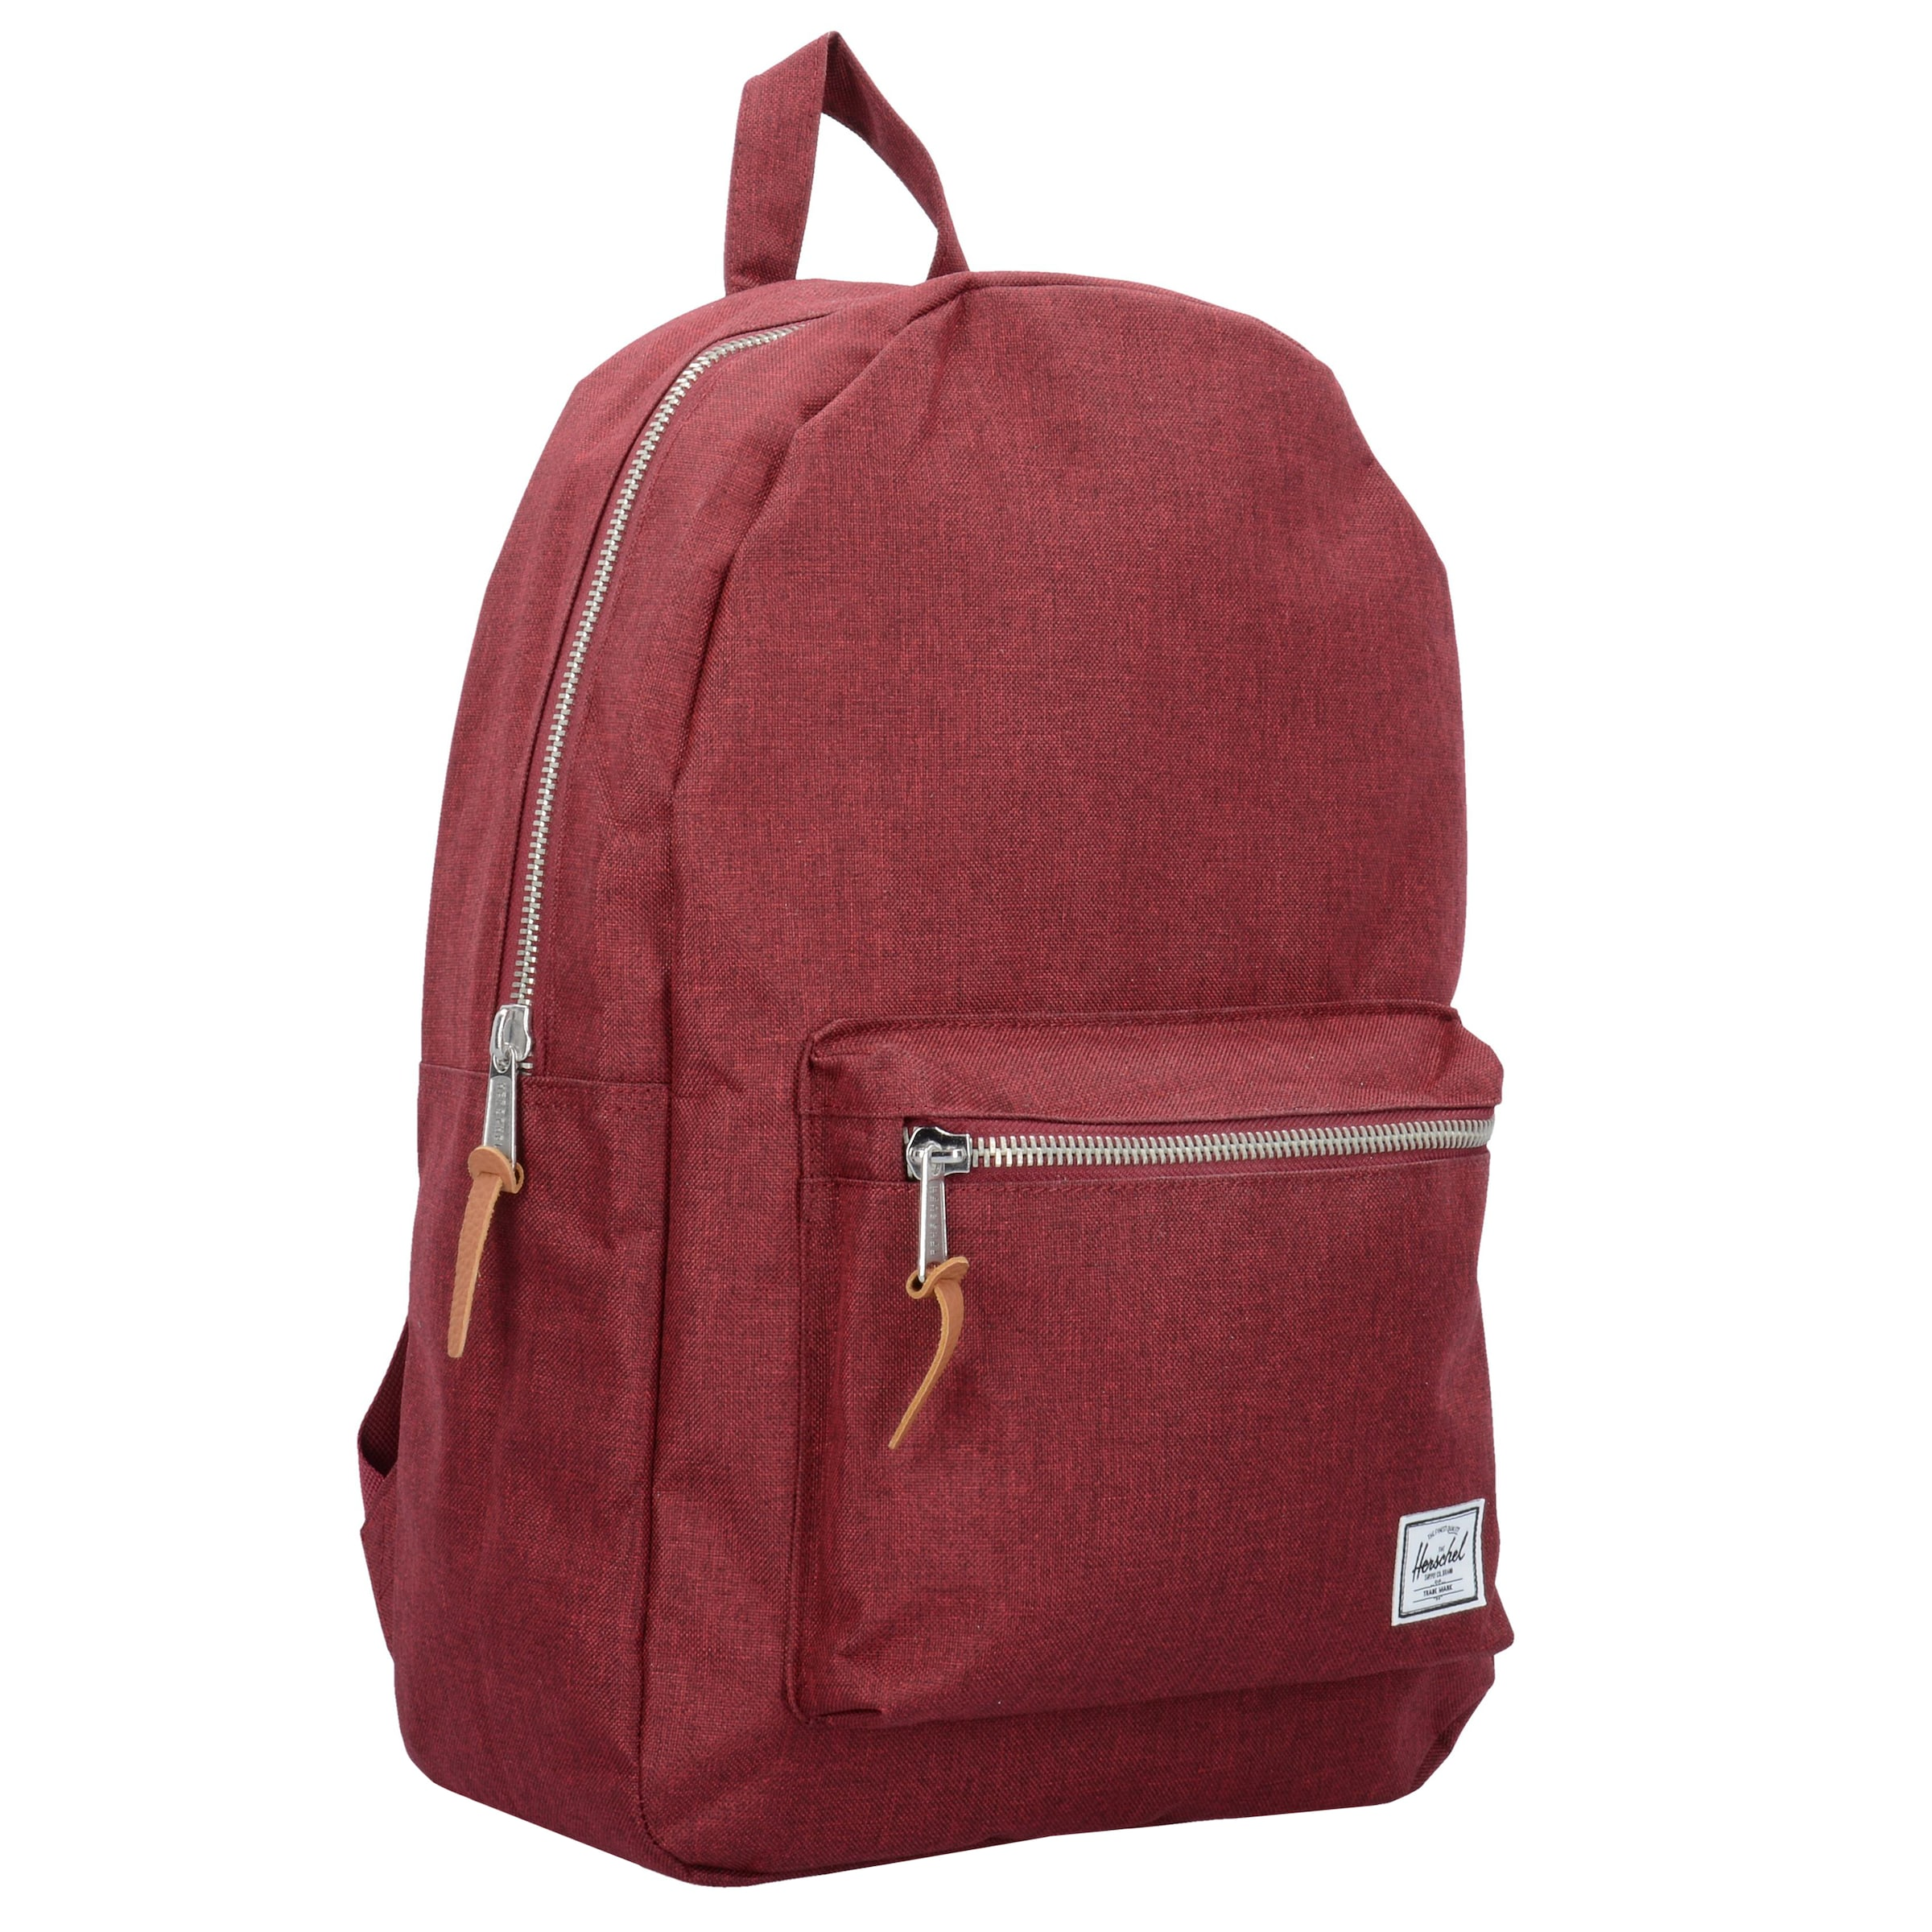 Rucksack Cm In 'settlement Backpack Merlot 17 Herschel I Laptopfach' 44 3Sj4Ac5RqL